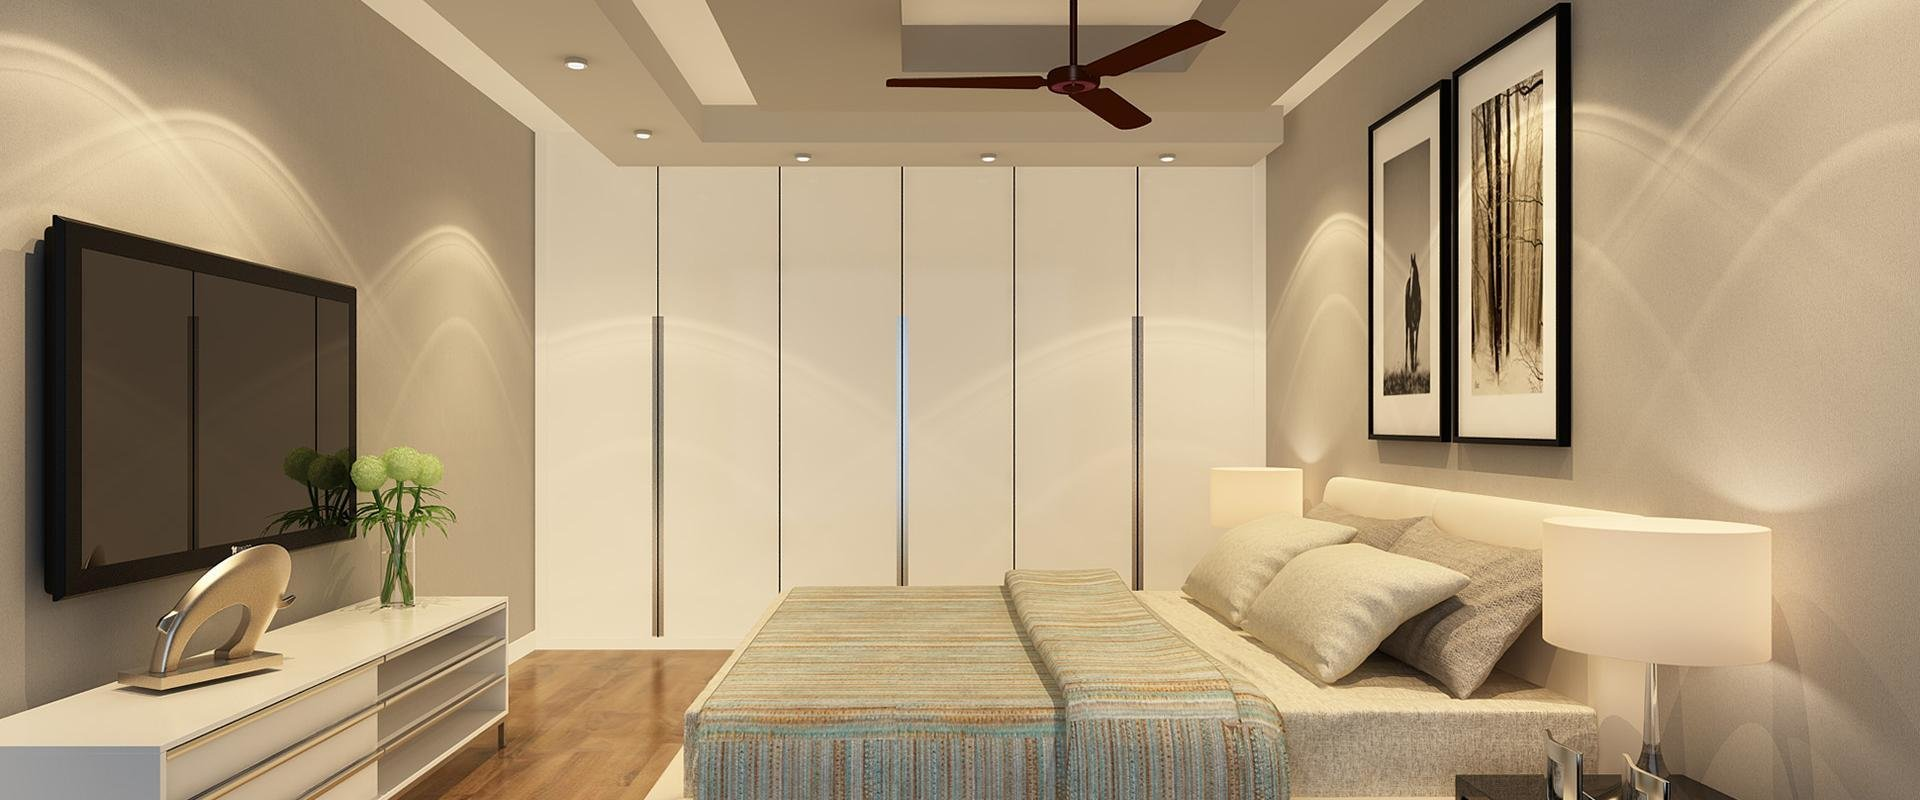 Best Bedroom False Ceiling Gypsum Board Drywall Plaster – Saint Gobain Gyproc India With Pictures